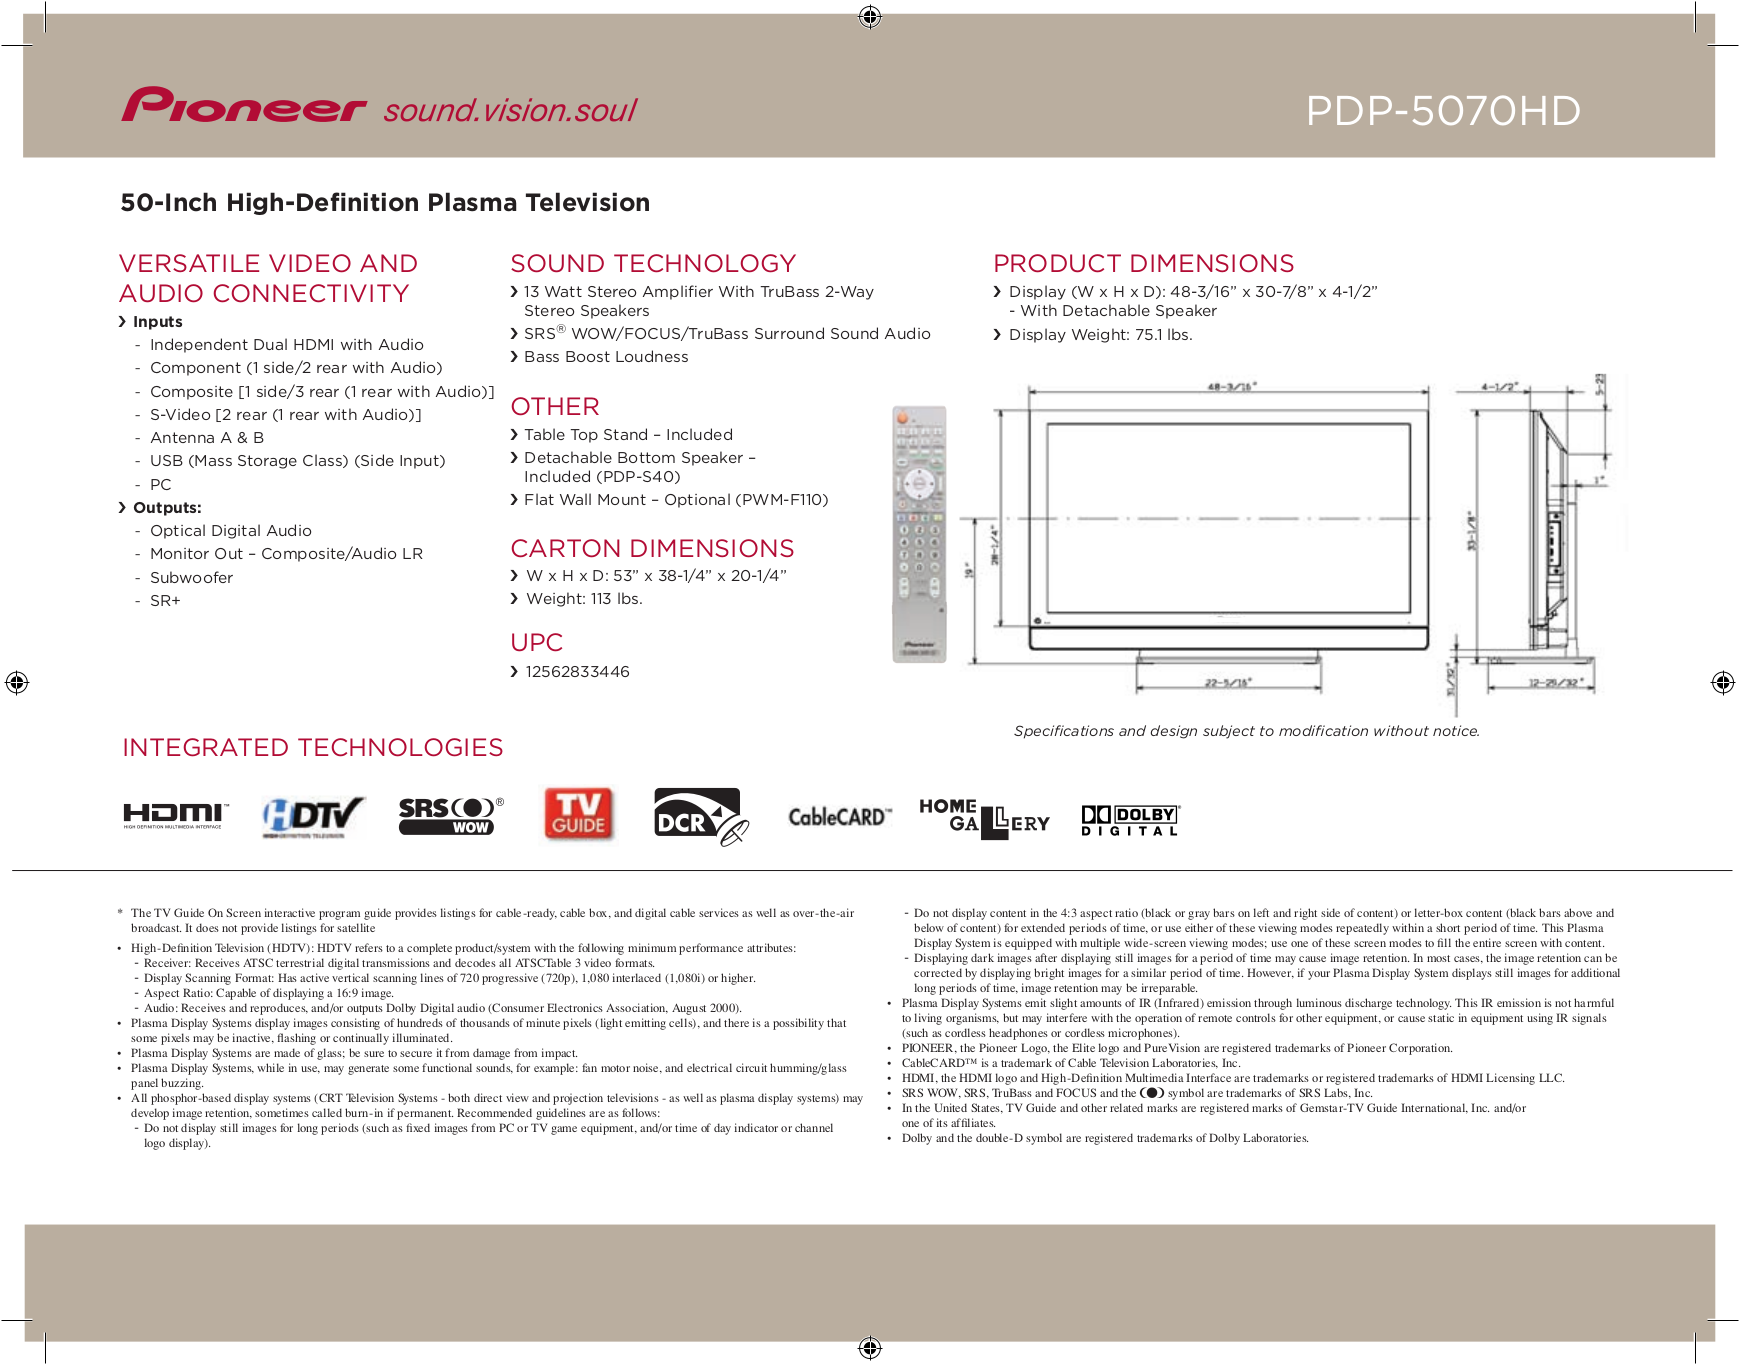 pdf manual for pioneer tv pdp 5070hd rh umlib com Pro-Form 955R Owner's Manual Pioneer Man Working